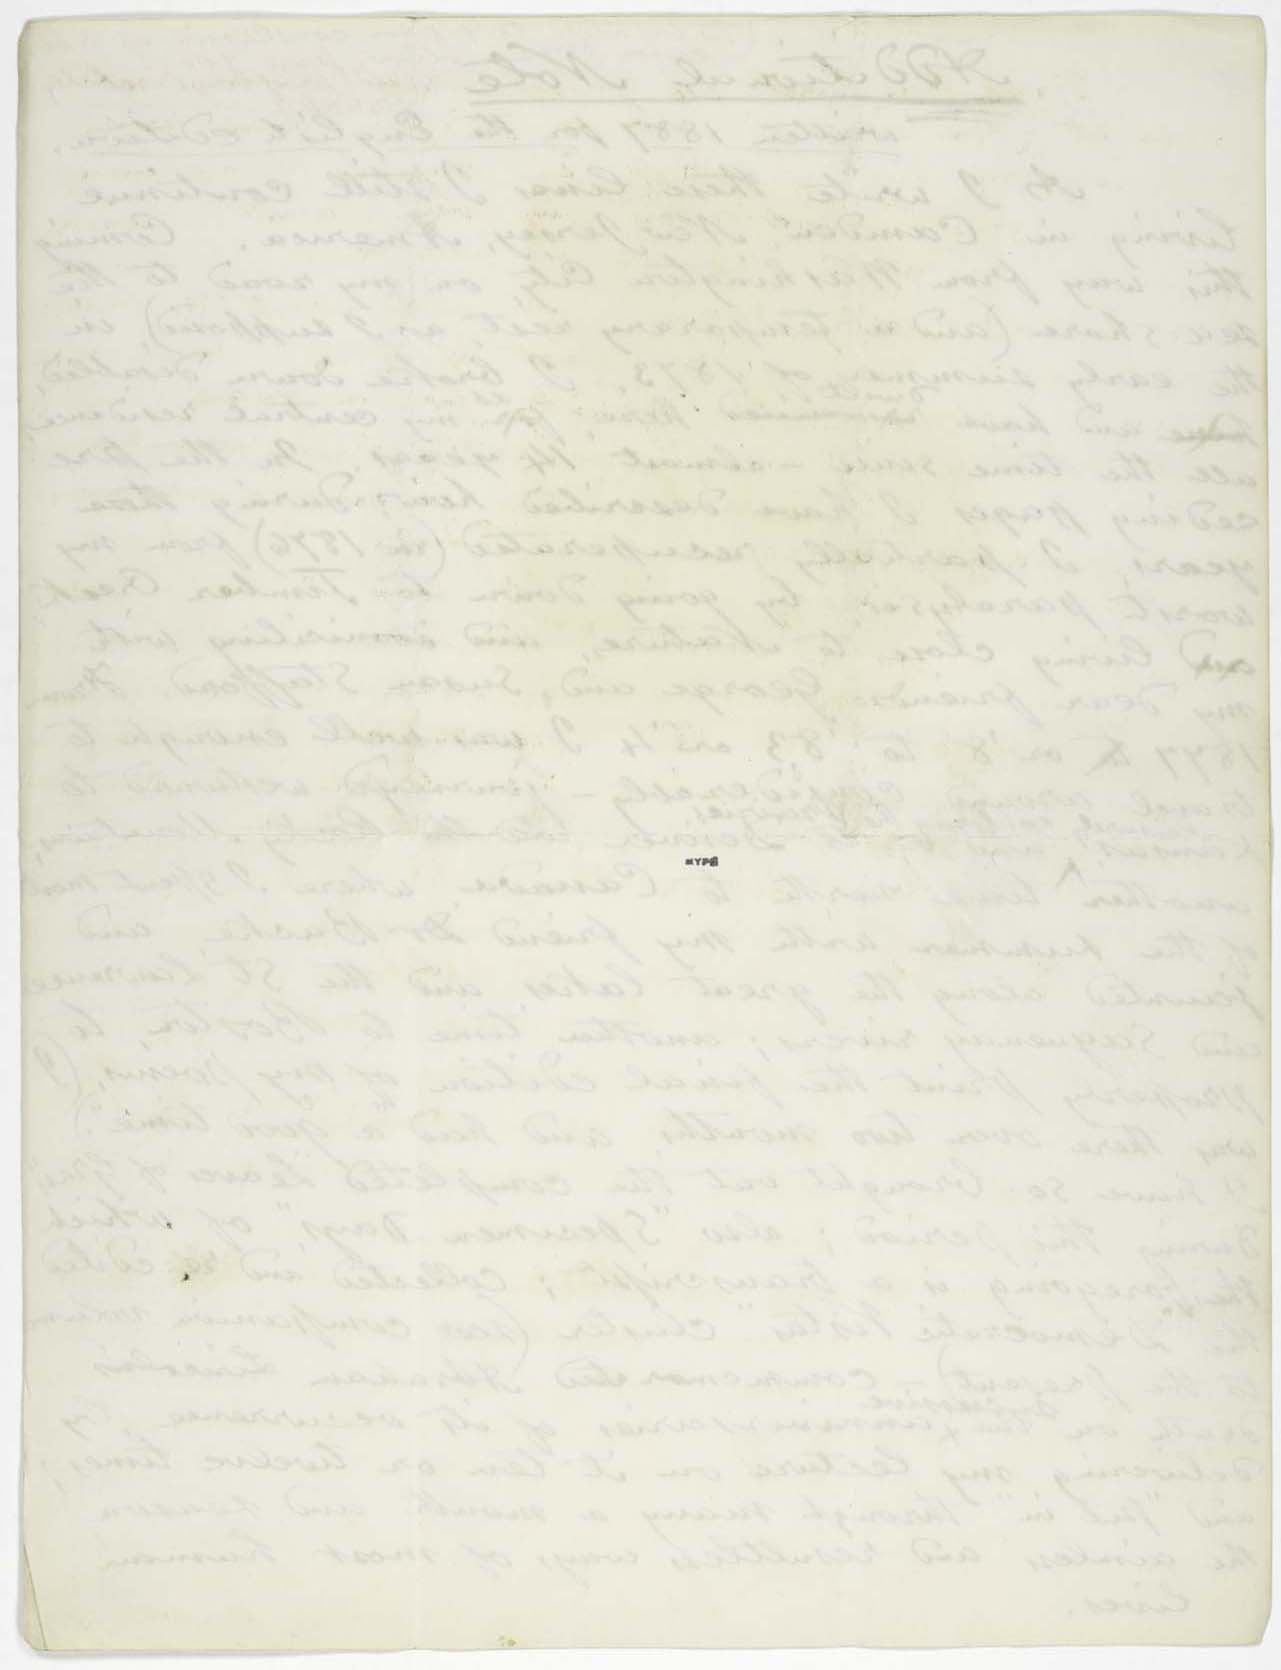 an integrated catalog of walt whitman s literary manuscripts the content a nearly complete draft of an essay whitman wrote for the english edition of specimen days this essay first appeared in 1887 as additional note